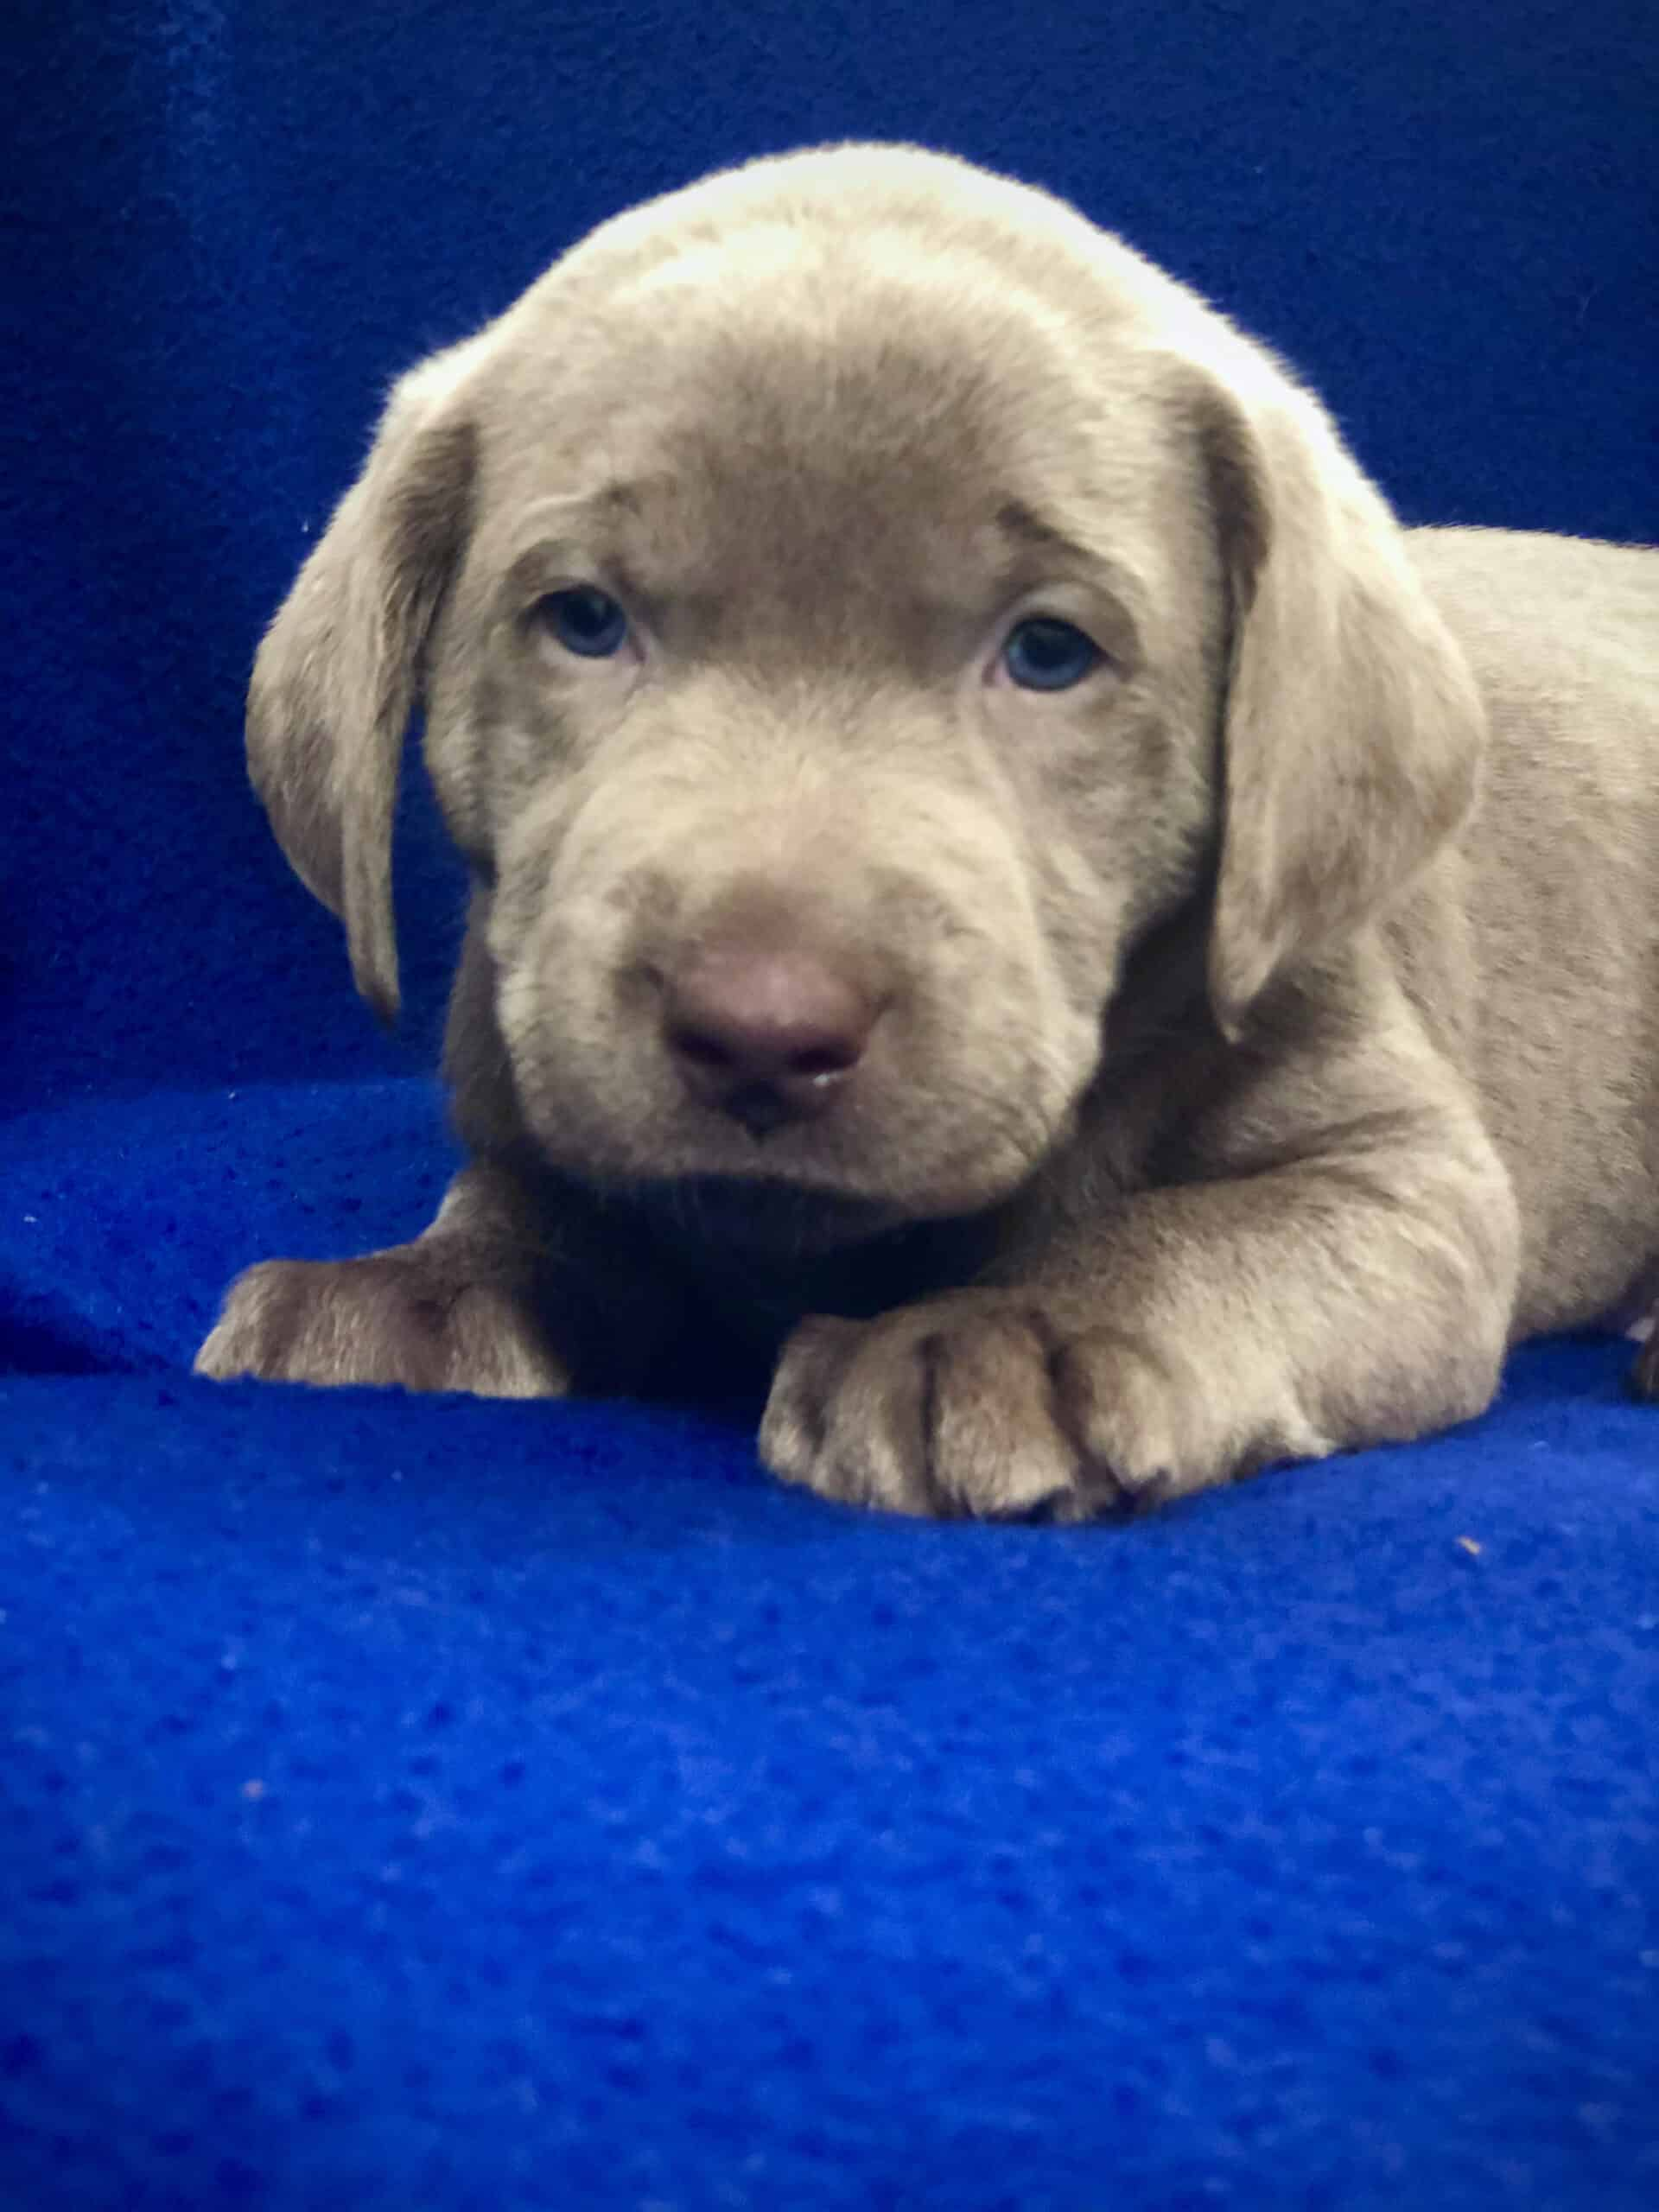 Silver Lab Puppies Oregon : silver, puppies, oregon, Silver, Labrador, Puppies